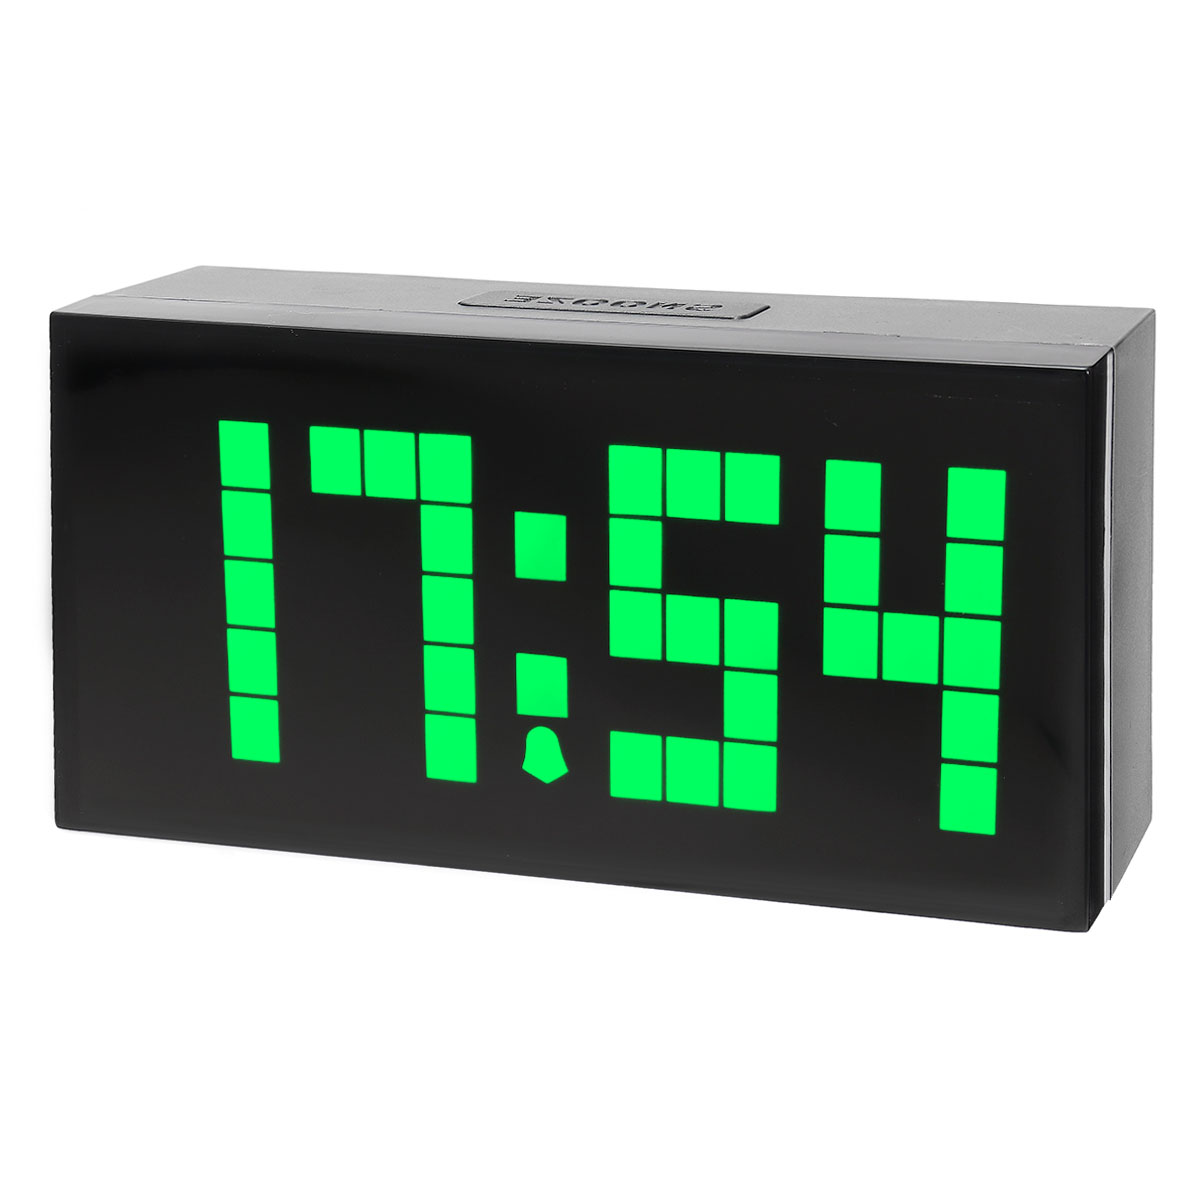 Loskii HC-301 Electronic Creative LED Dot Design Digit Cube Thermometer Date Snooze Function Alarm Clock Lansing Prices for goods